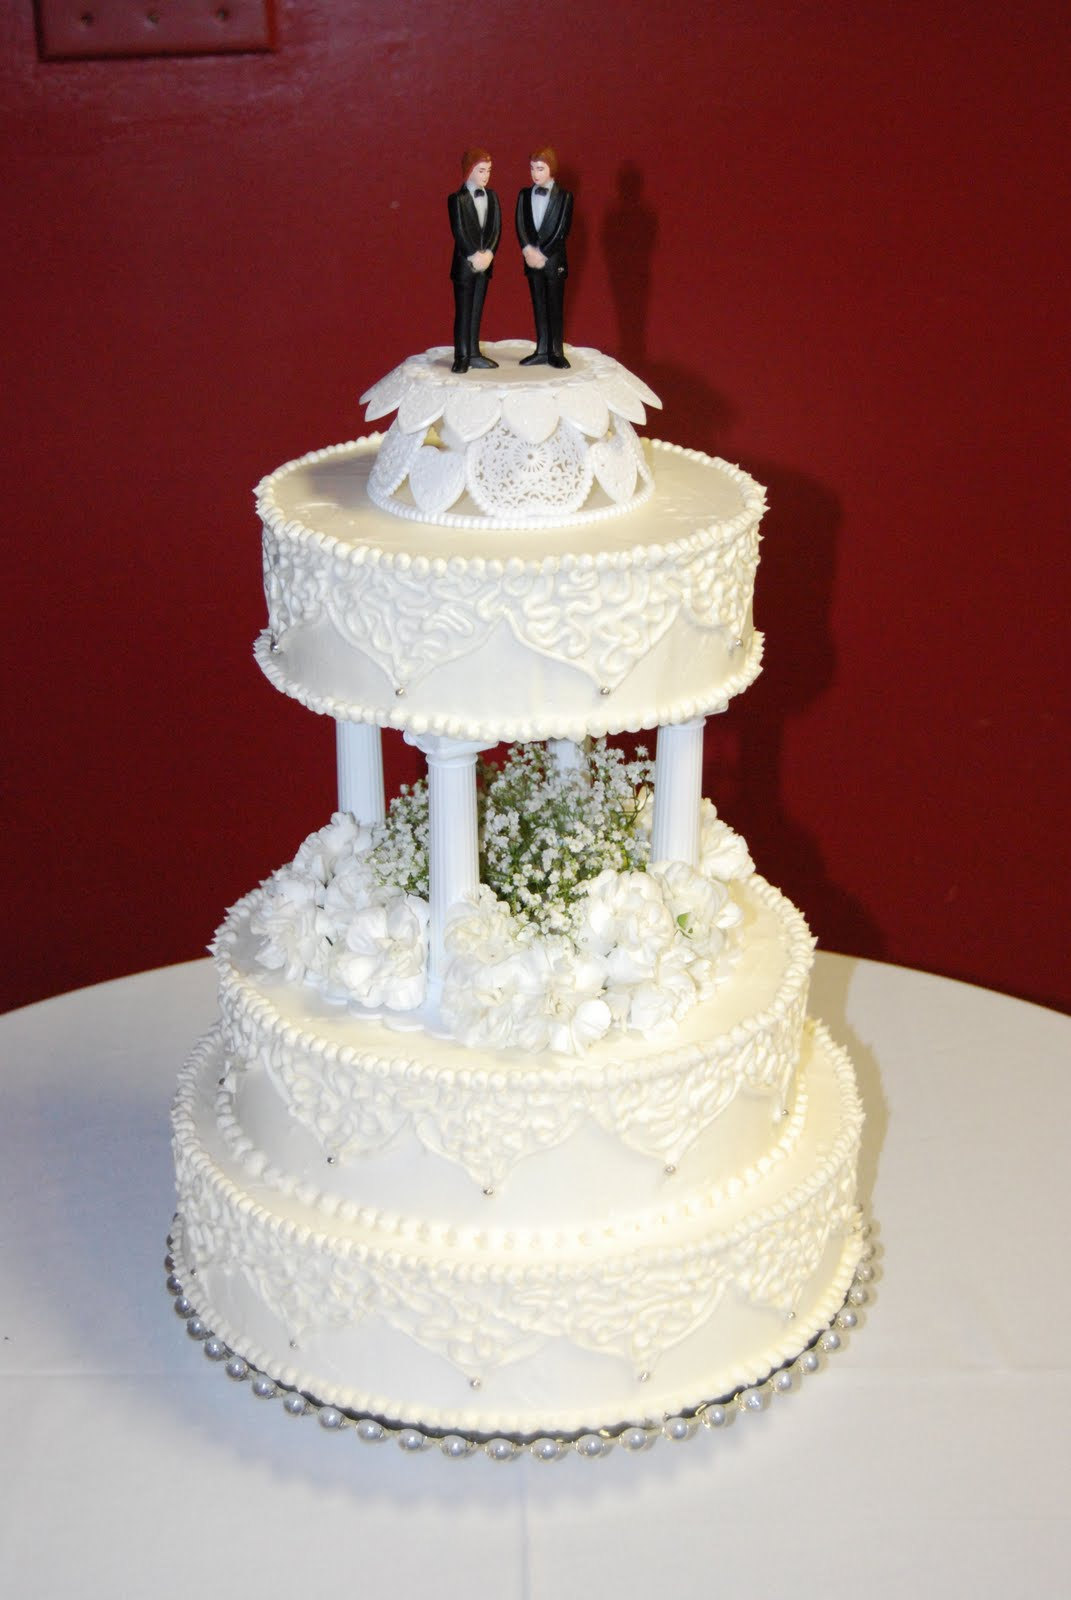 Everything Is Frosted Traditional wedding cake with